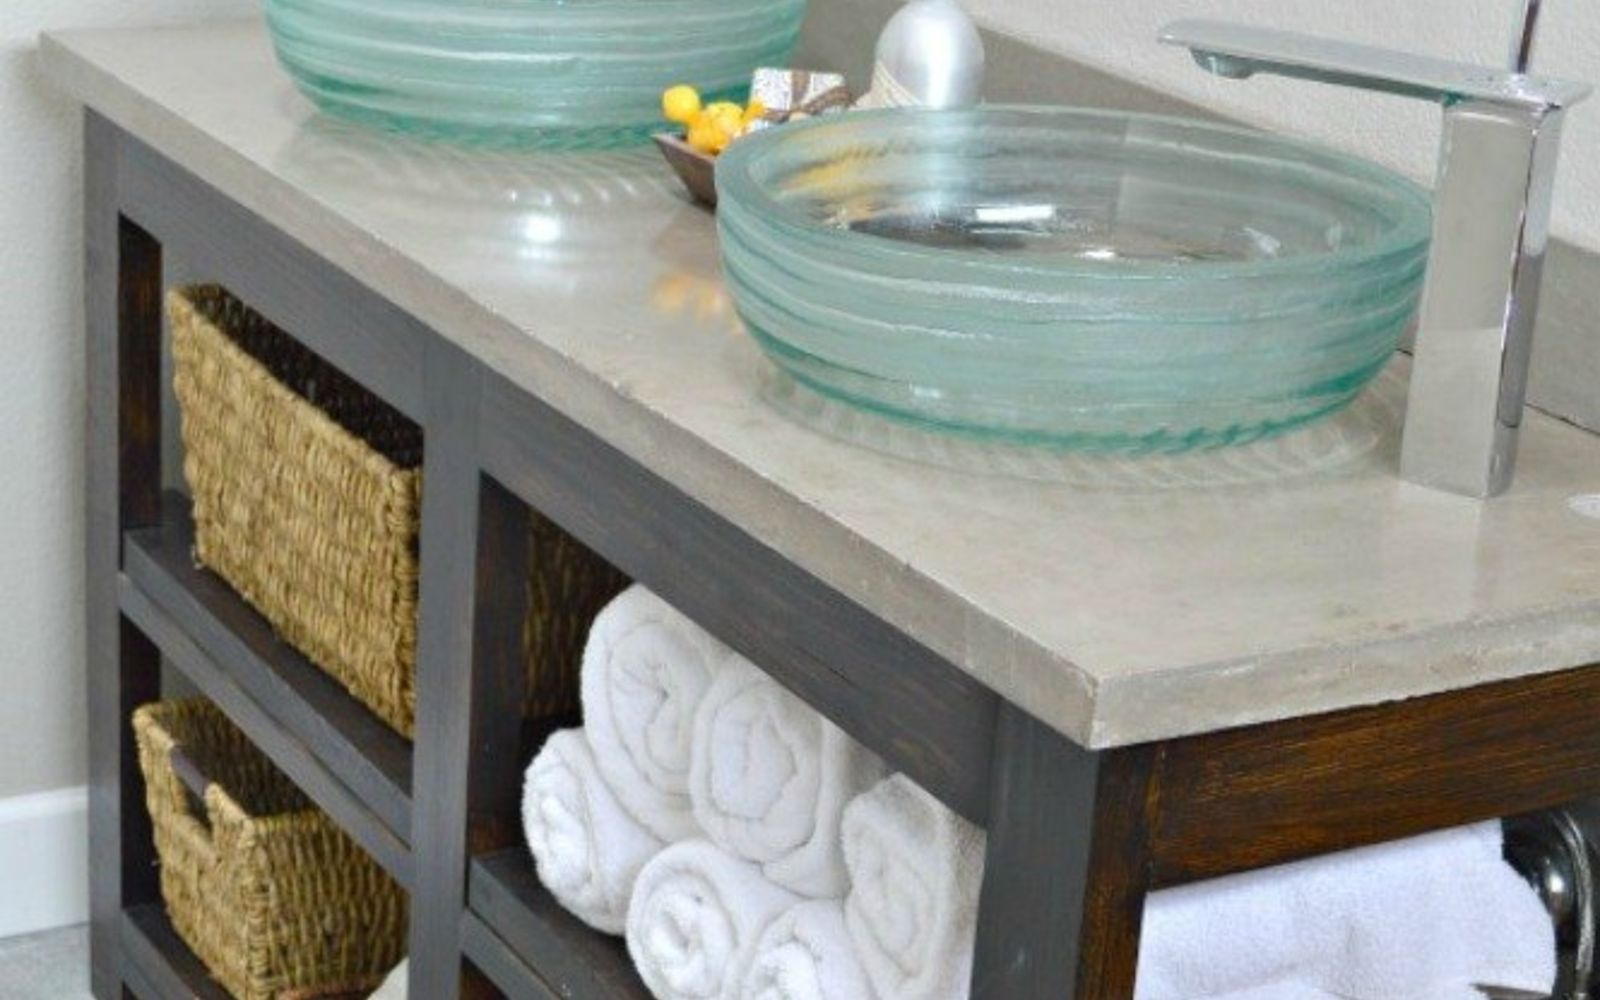 11 ways to transform your bathroom vanity without replacing it